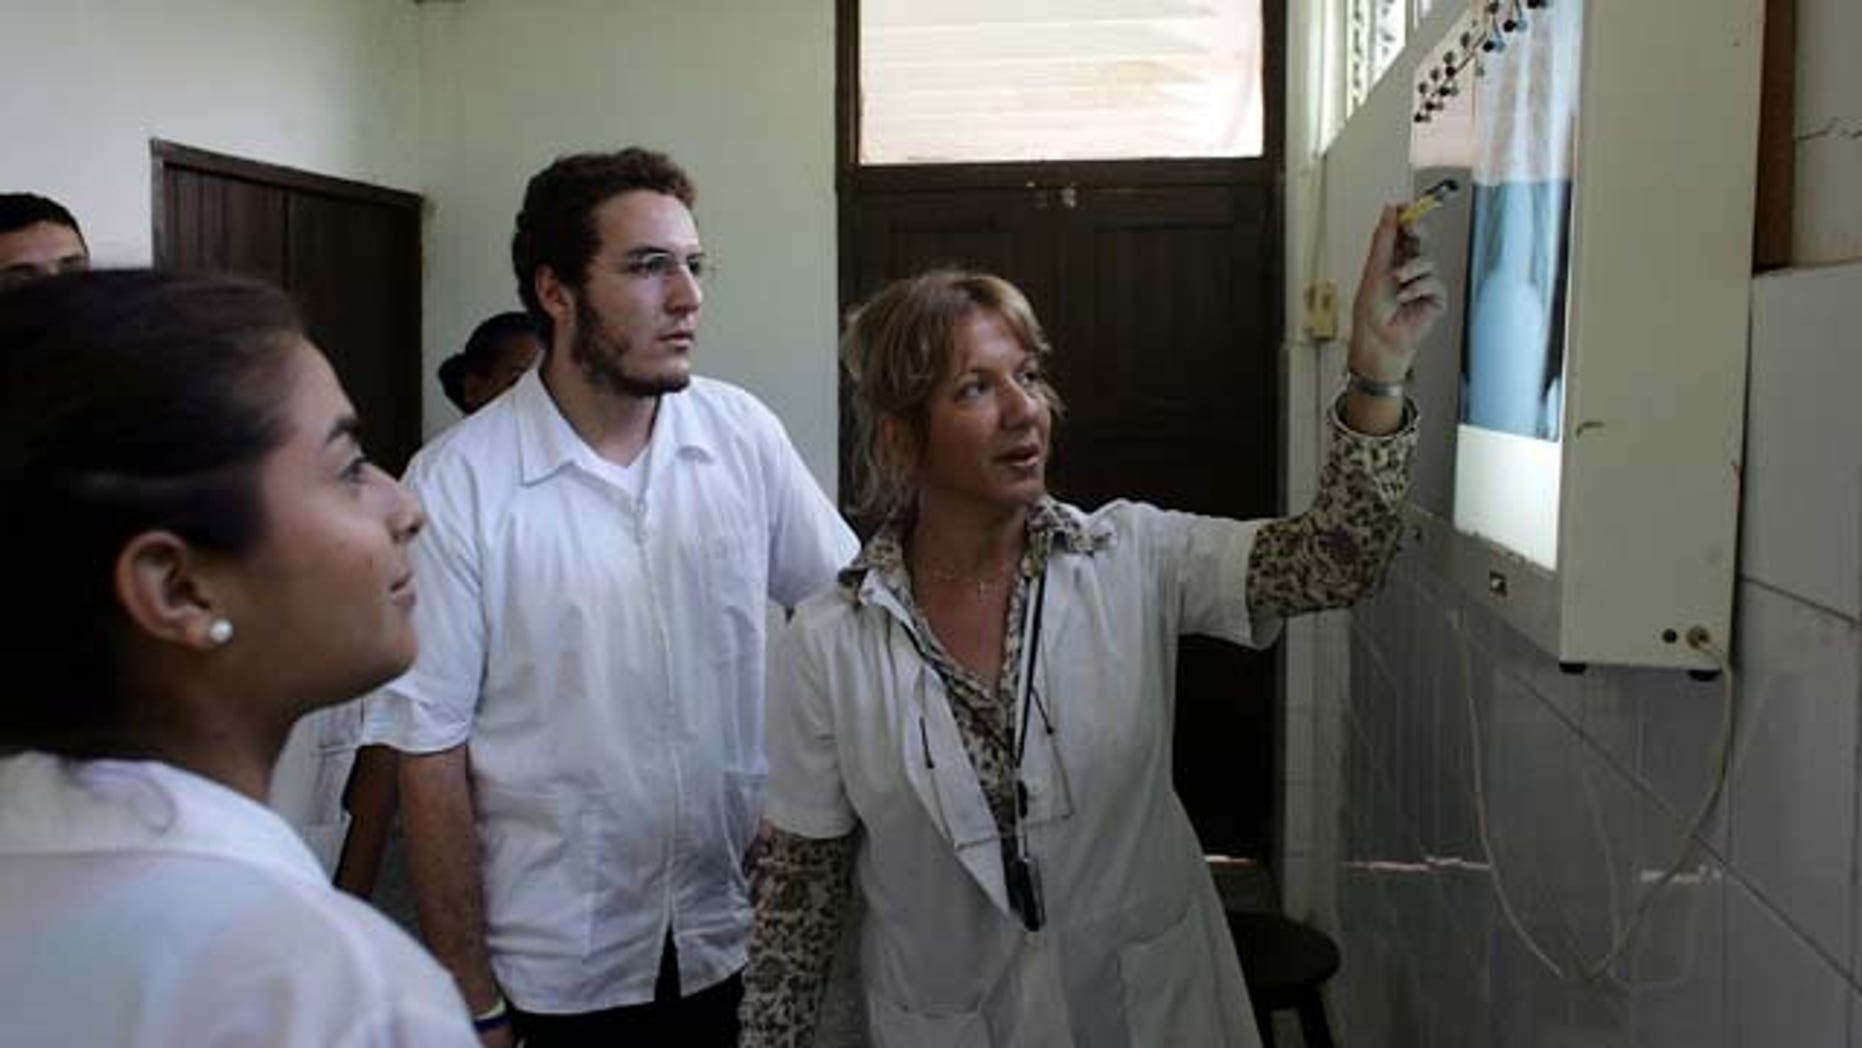 HAVANA - DECEMBER 04: Dr. Nancy Magarita Gonzalez Rodriguez goes over an x-ray with her students at the Latin American School of Medical Sciences December 4, 2006 in Havana, Cuba. Students who graduate from the Caribbean and try to practice in Brazil have overwhelmingly failed a medical exam there, according to Brazil's Ministry of Education.  (Photo by Joe Raedle/Getty Images)